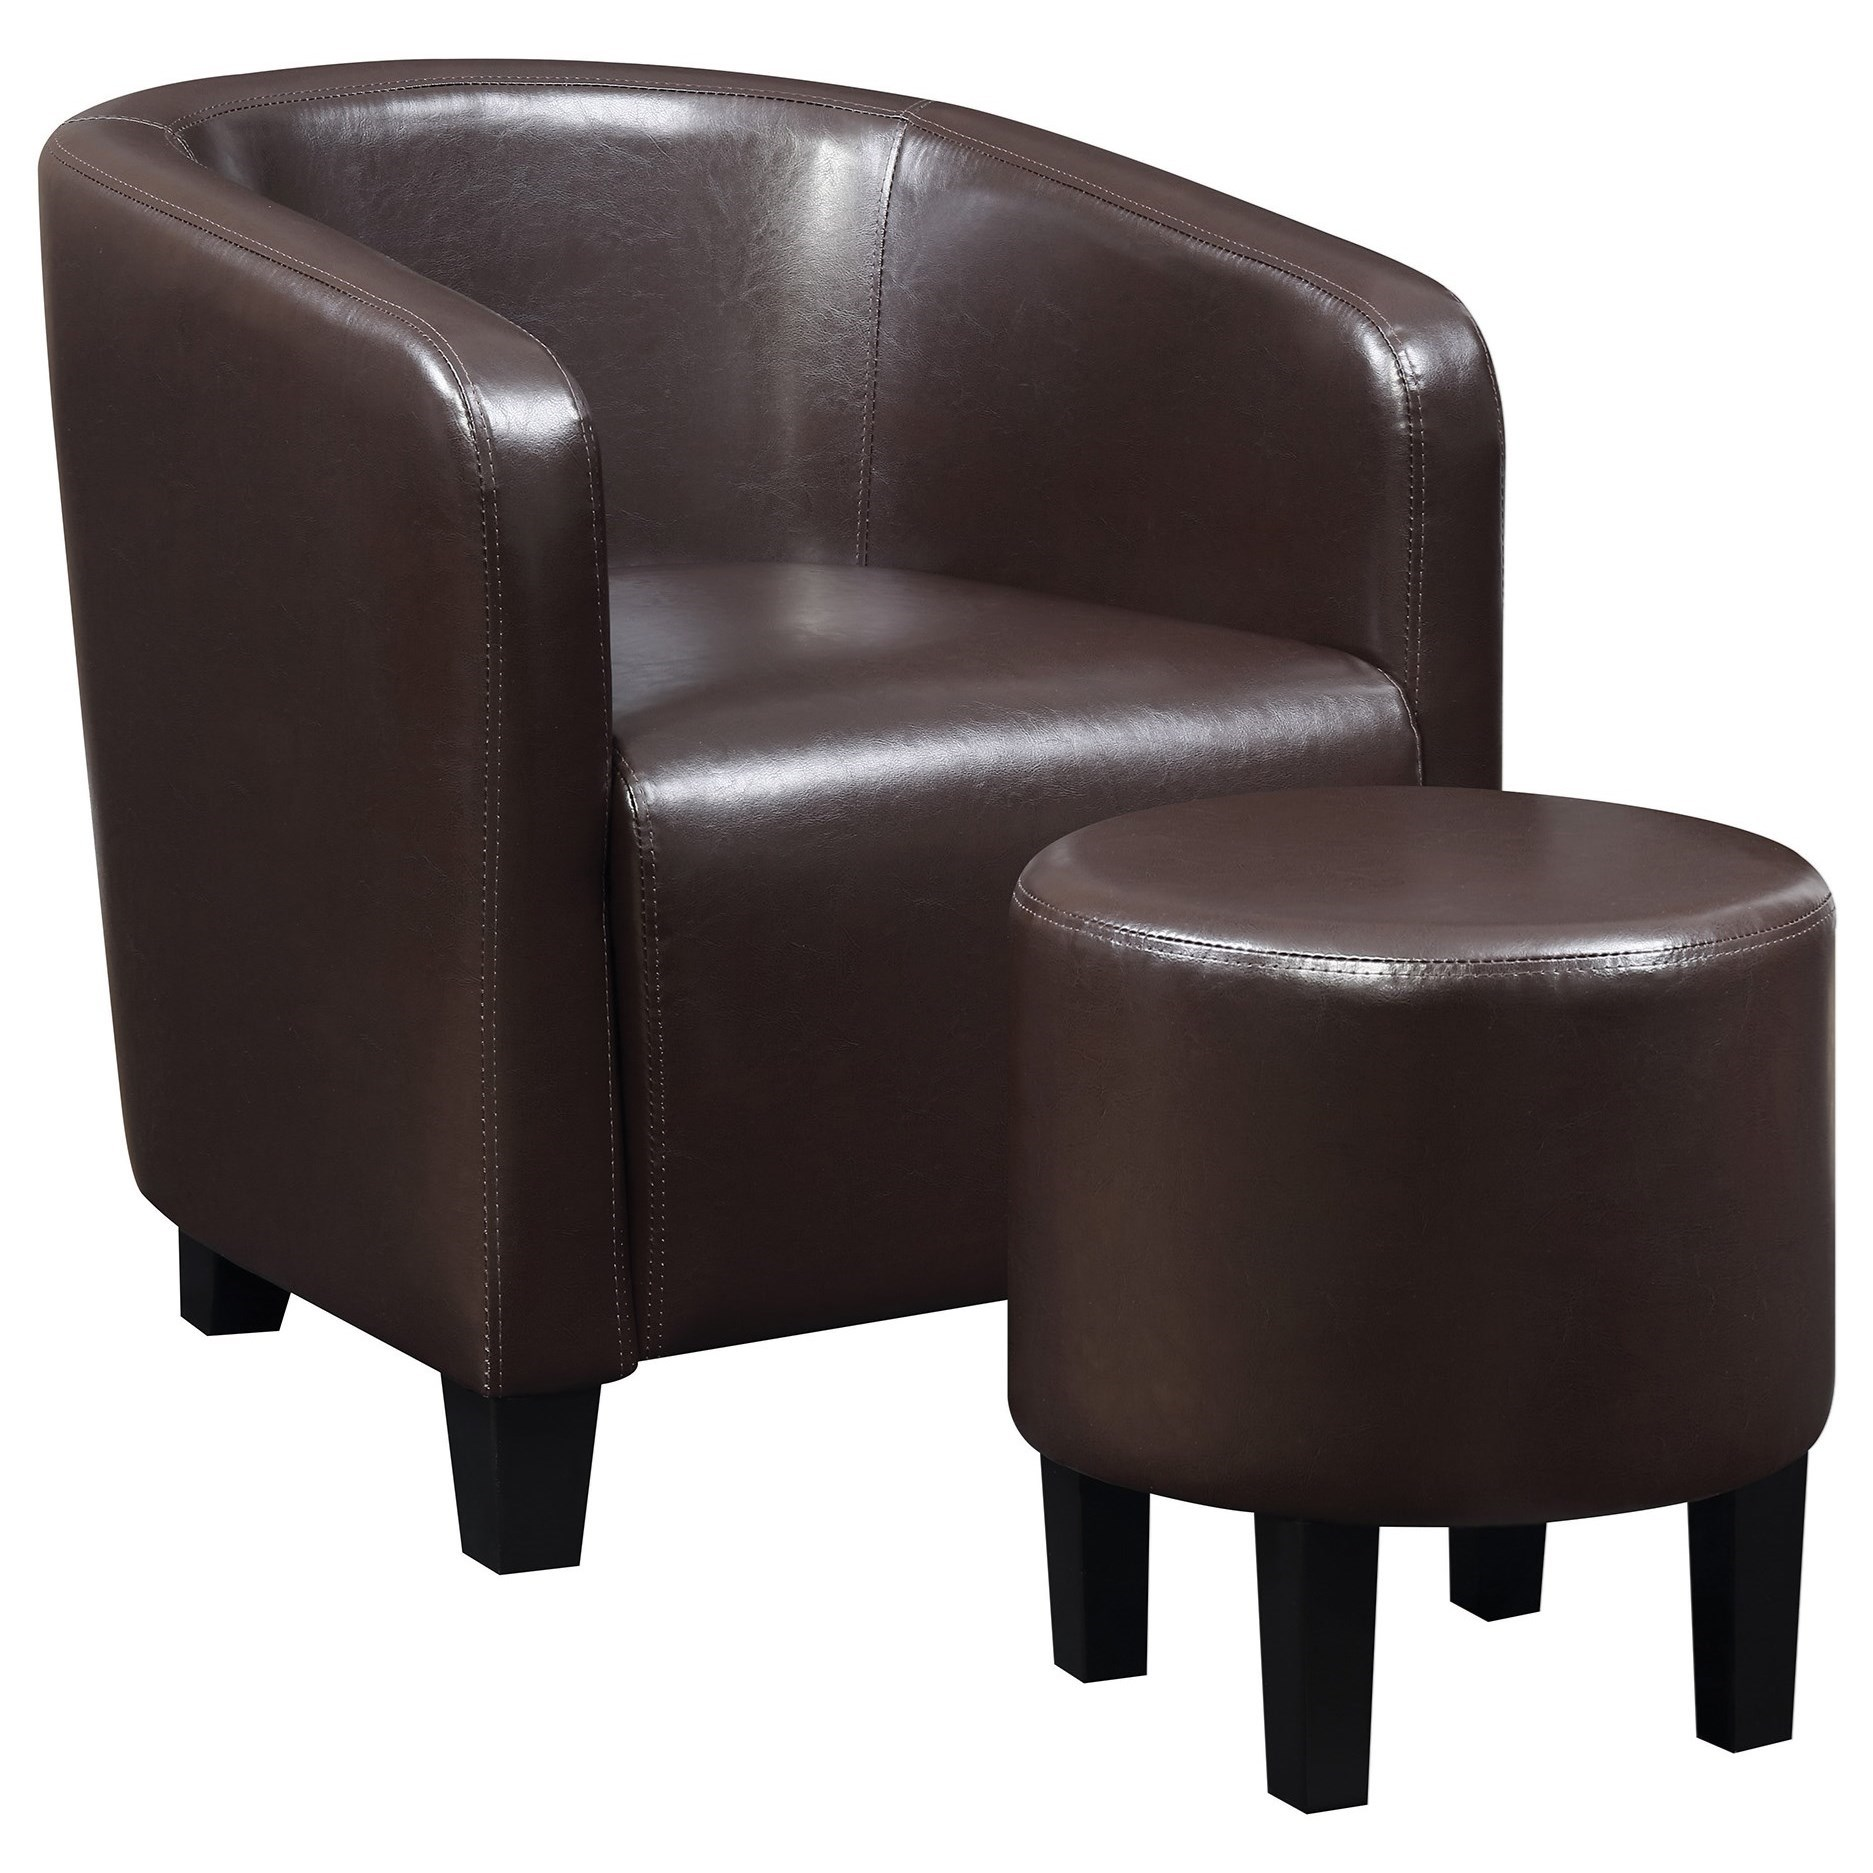 Coaster Accent Seating Accent Chair - Item Number: 903362